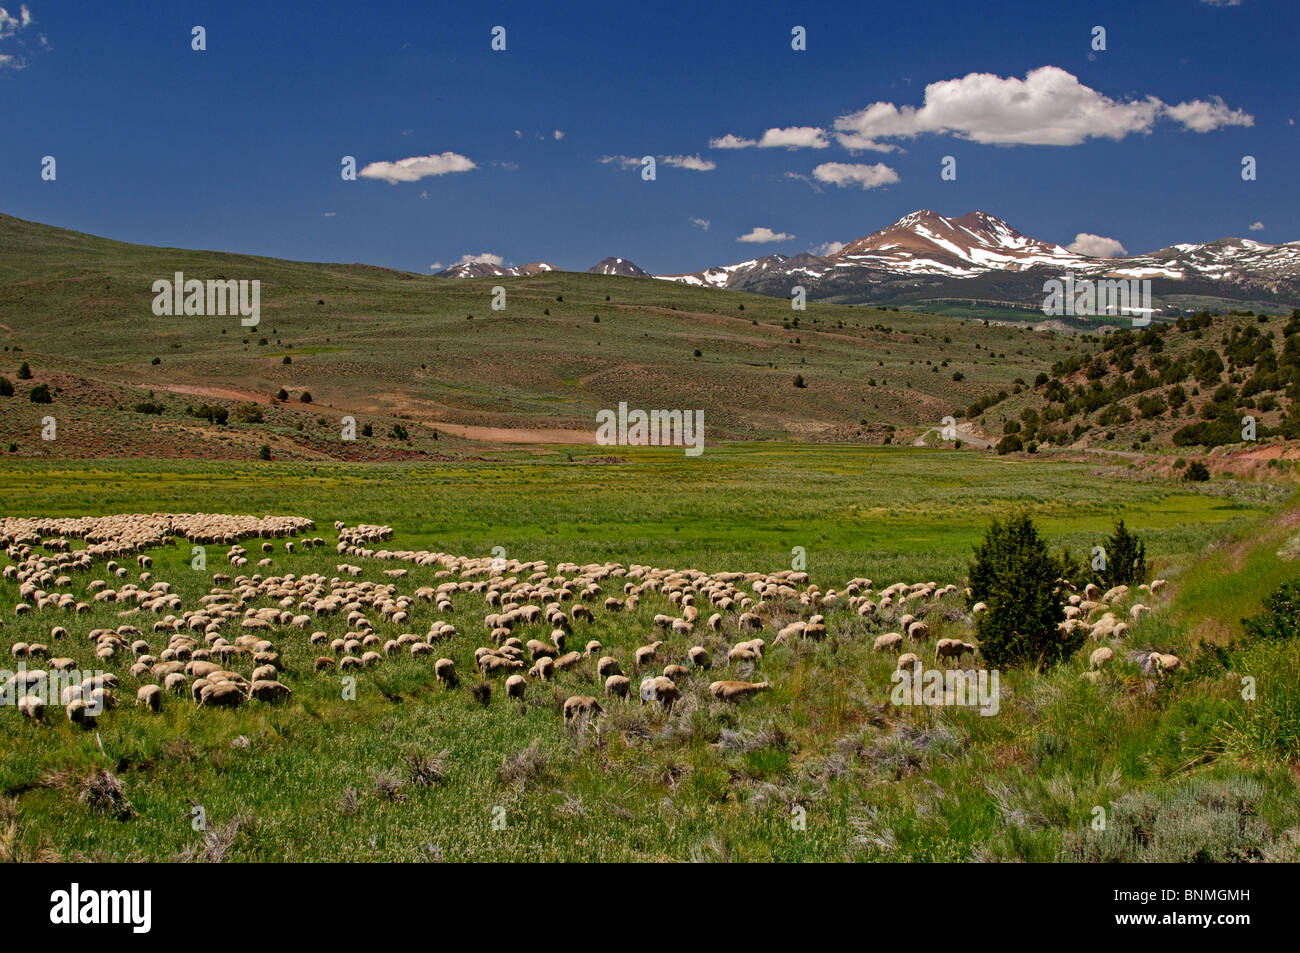 Highway 395 Stock Photos & Highway 395 Stock Images - Alamy